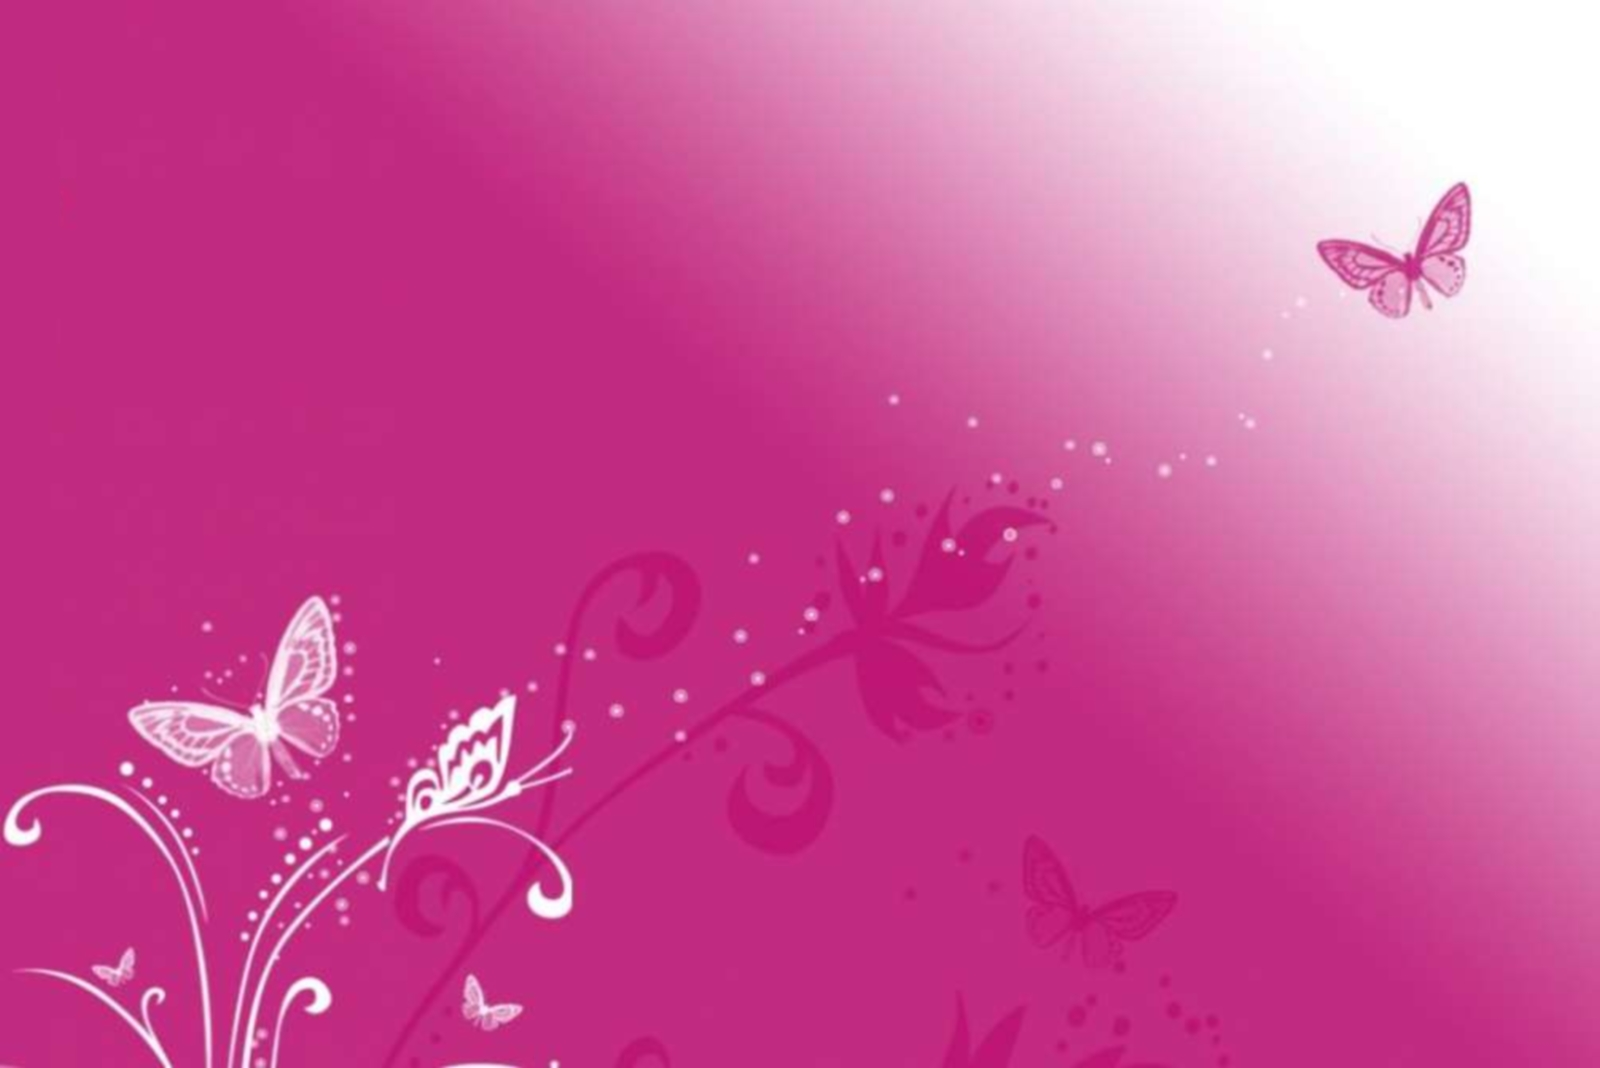 comPink Butterfly Vector Background HD Wallpaper Vector Designs 1600x1068